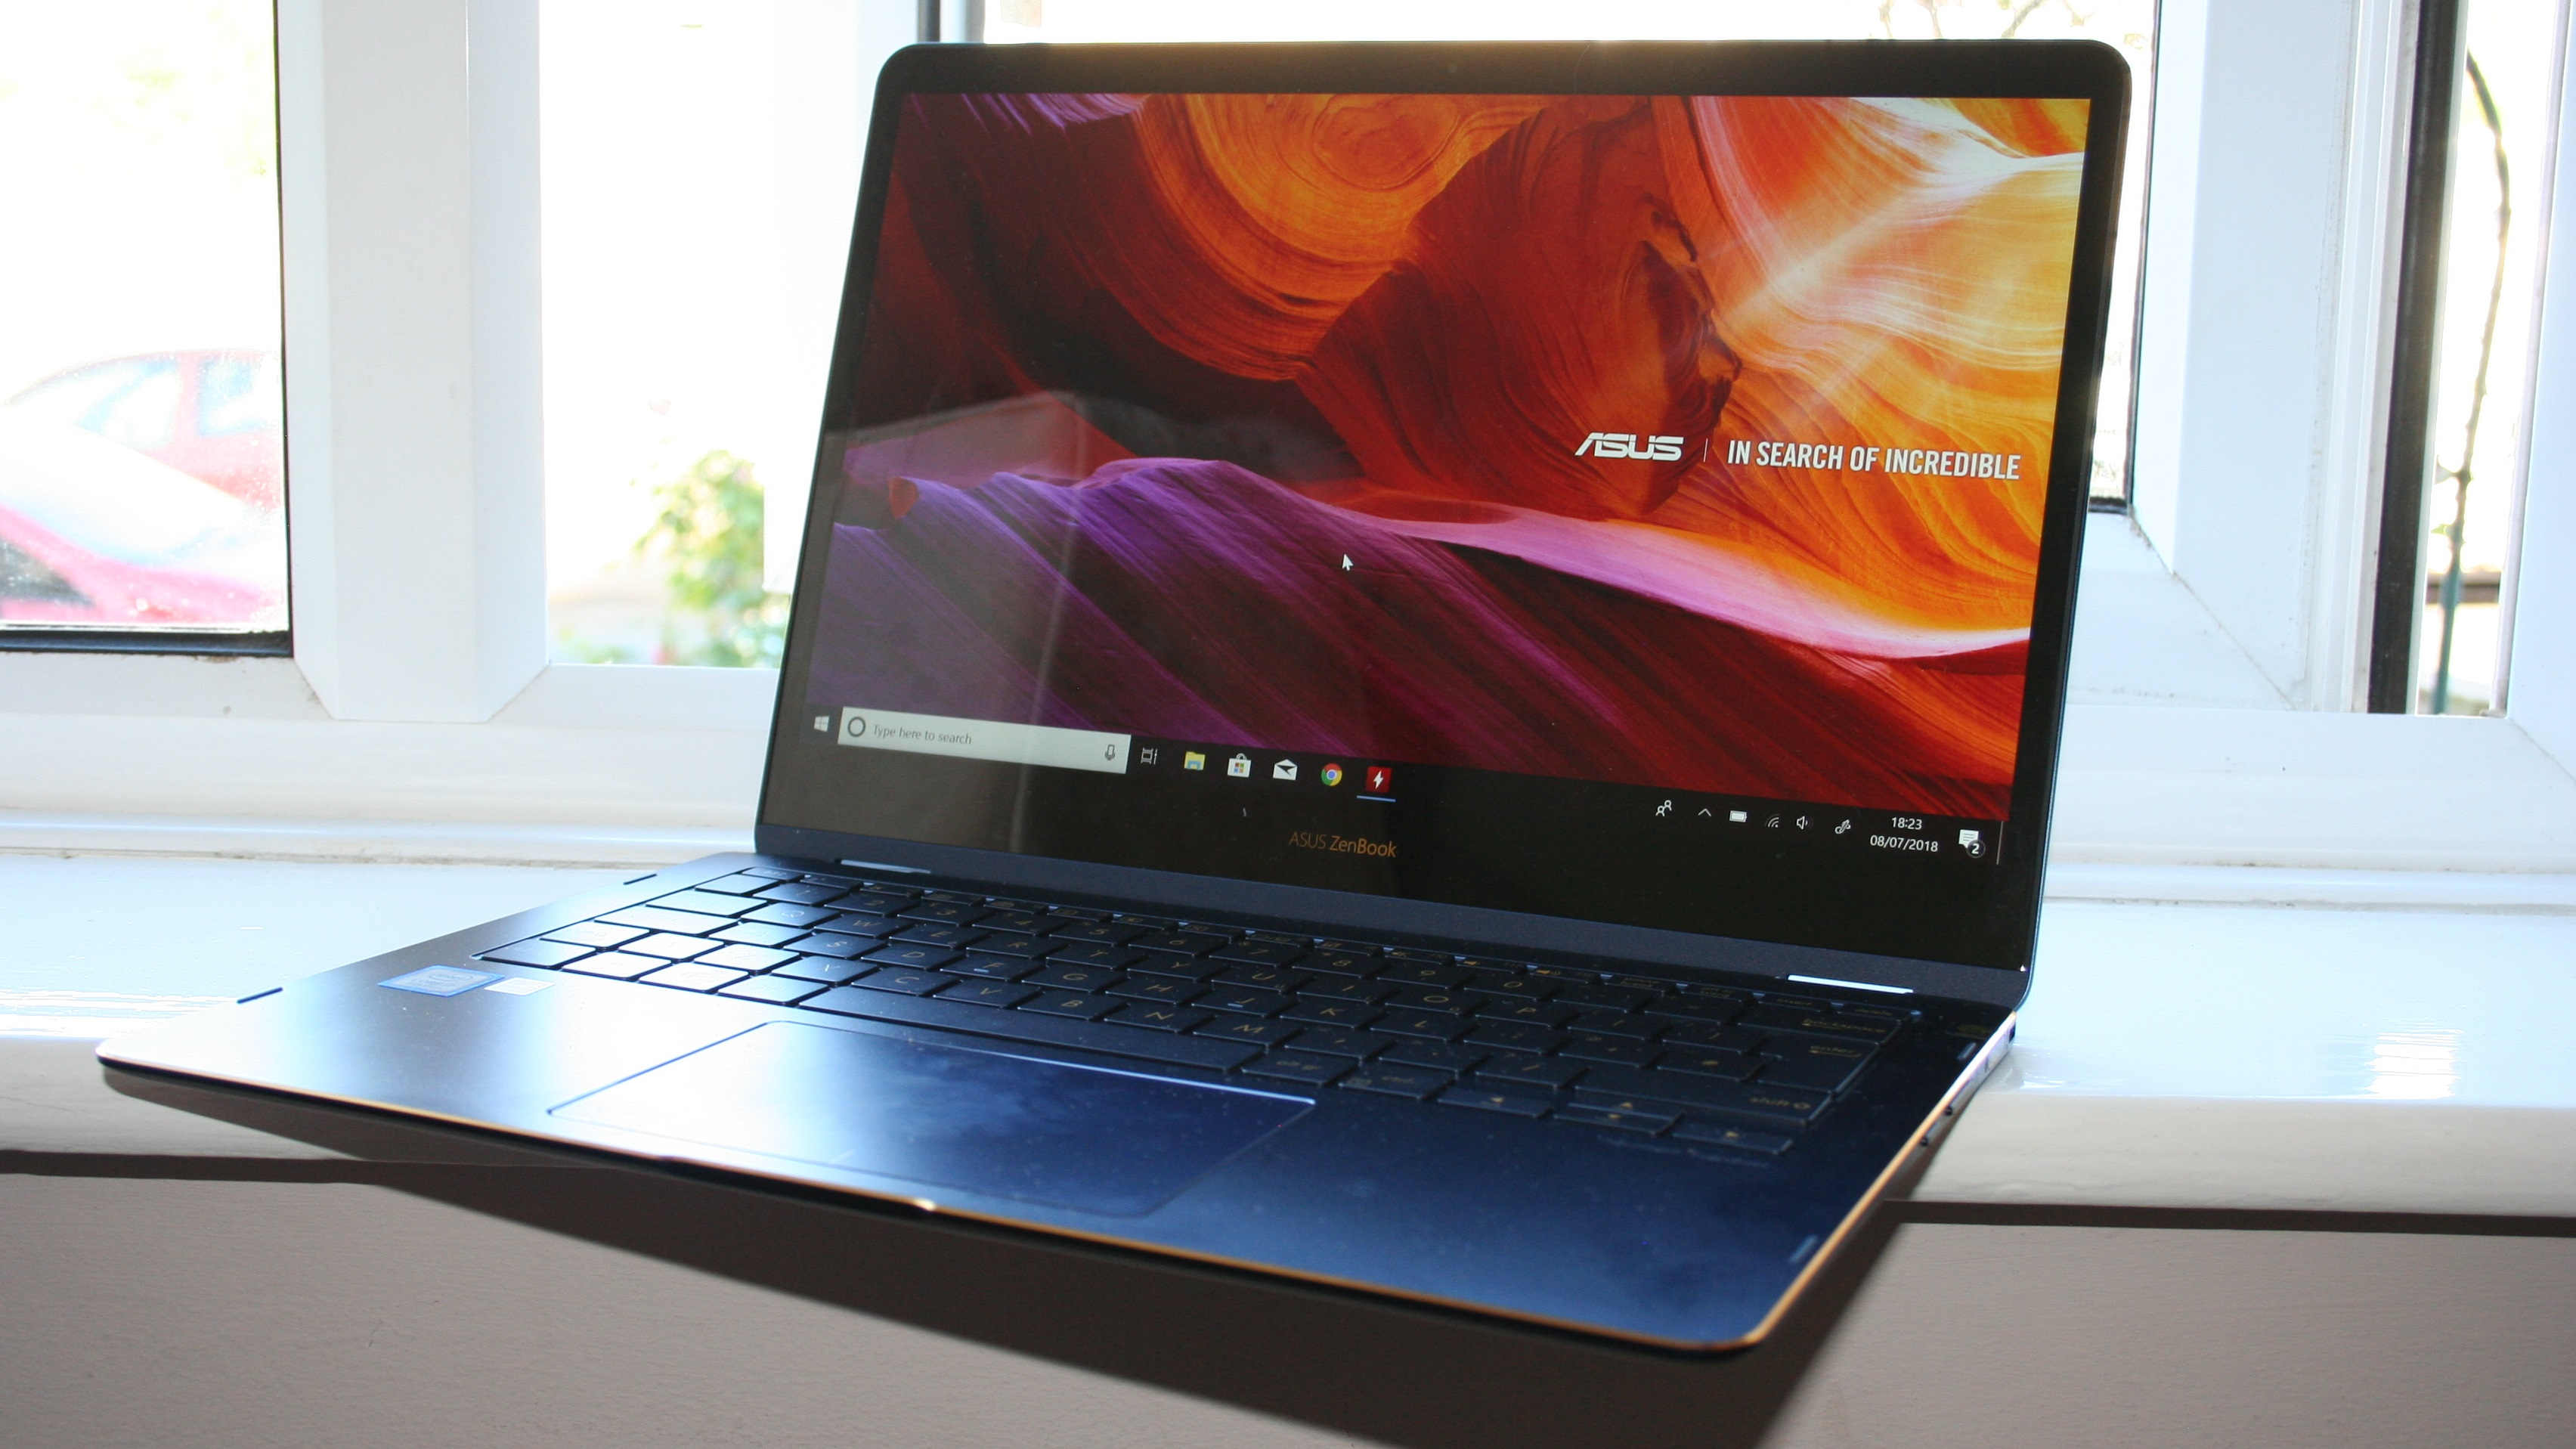 CLNcH477pLKyBAhn7kJeV5 - The best 2-in-1 laptop in Australia: find the best convertible for your needs